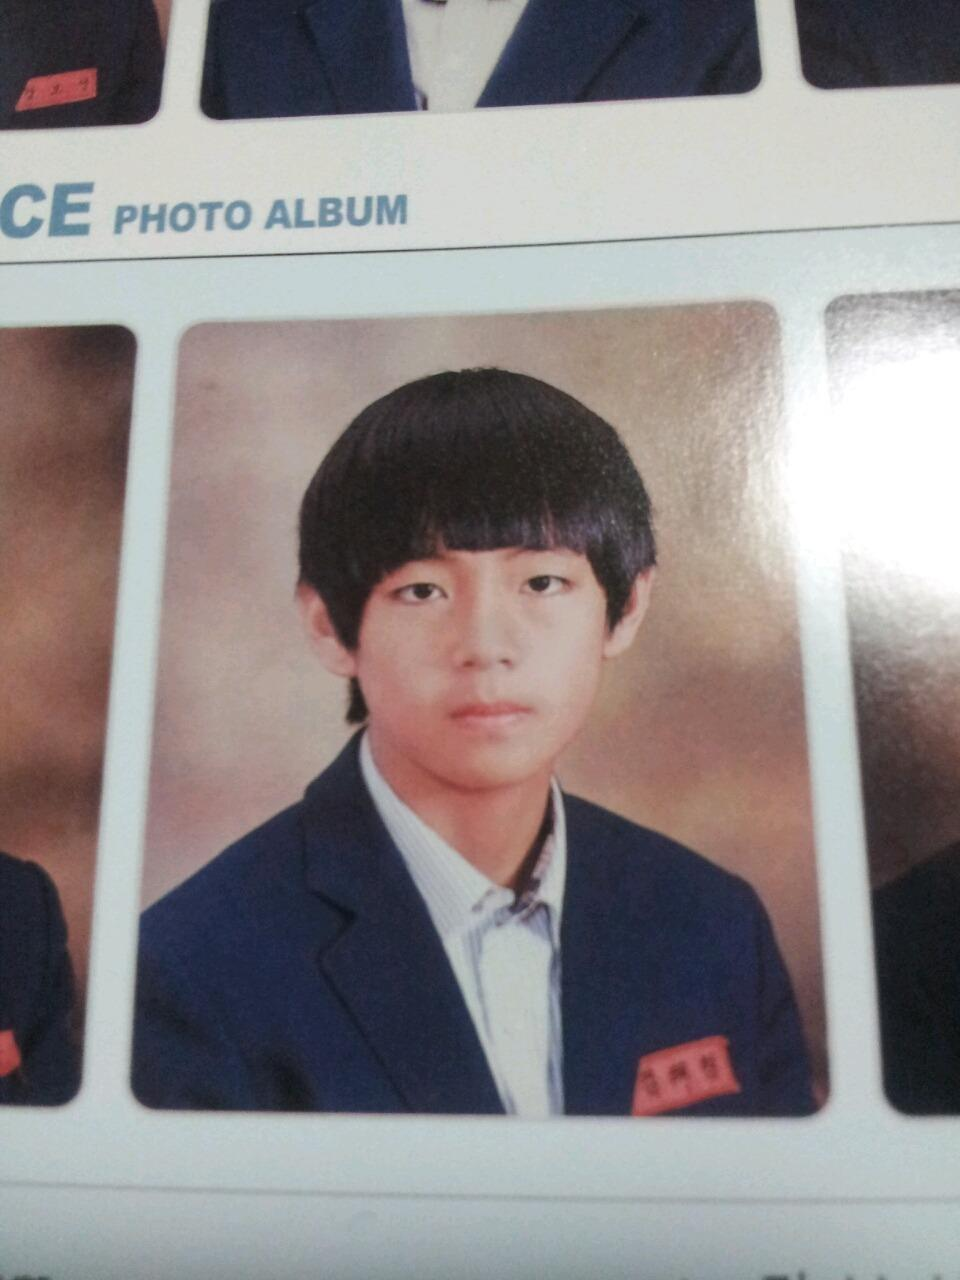 Pre-Debut Pictures Of Bts V Show How Much Hes Changed - Koreaboo-3887